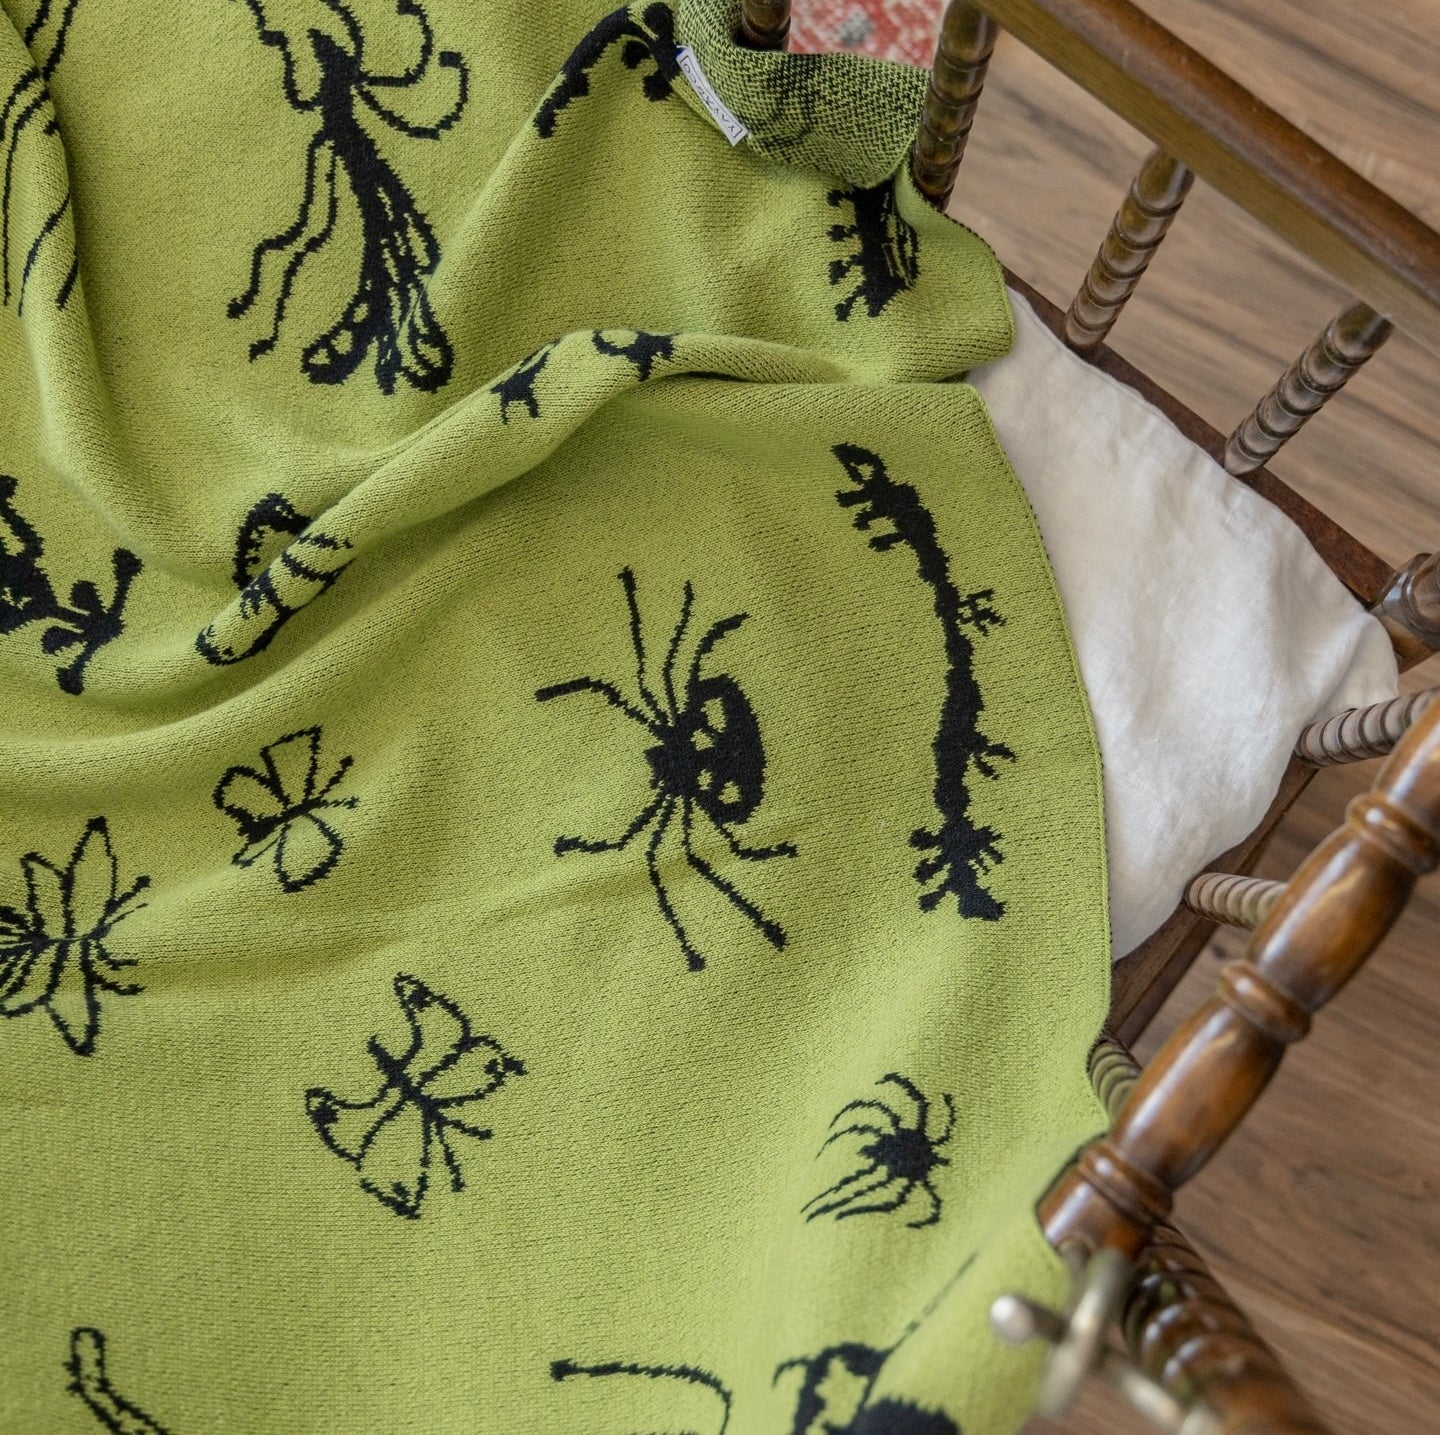 A lime green throw blanket with black bugs pattern